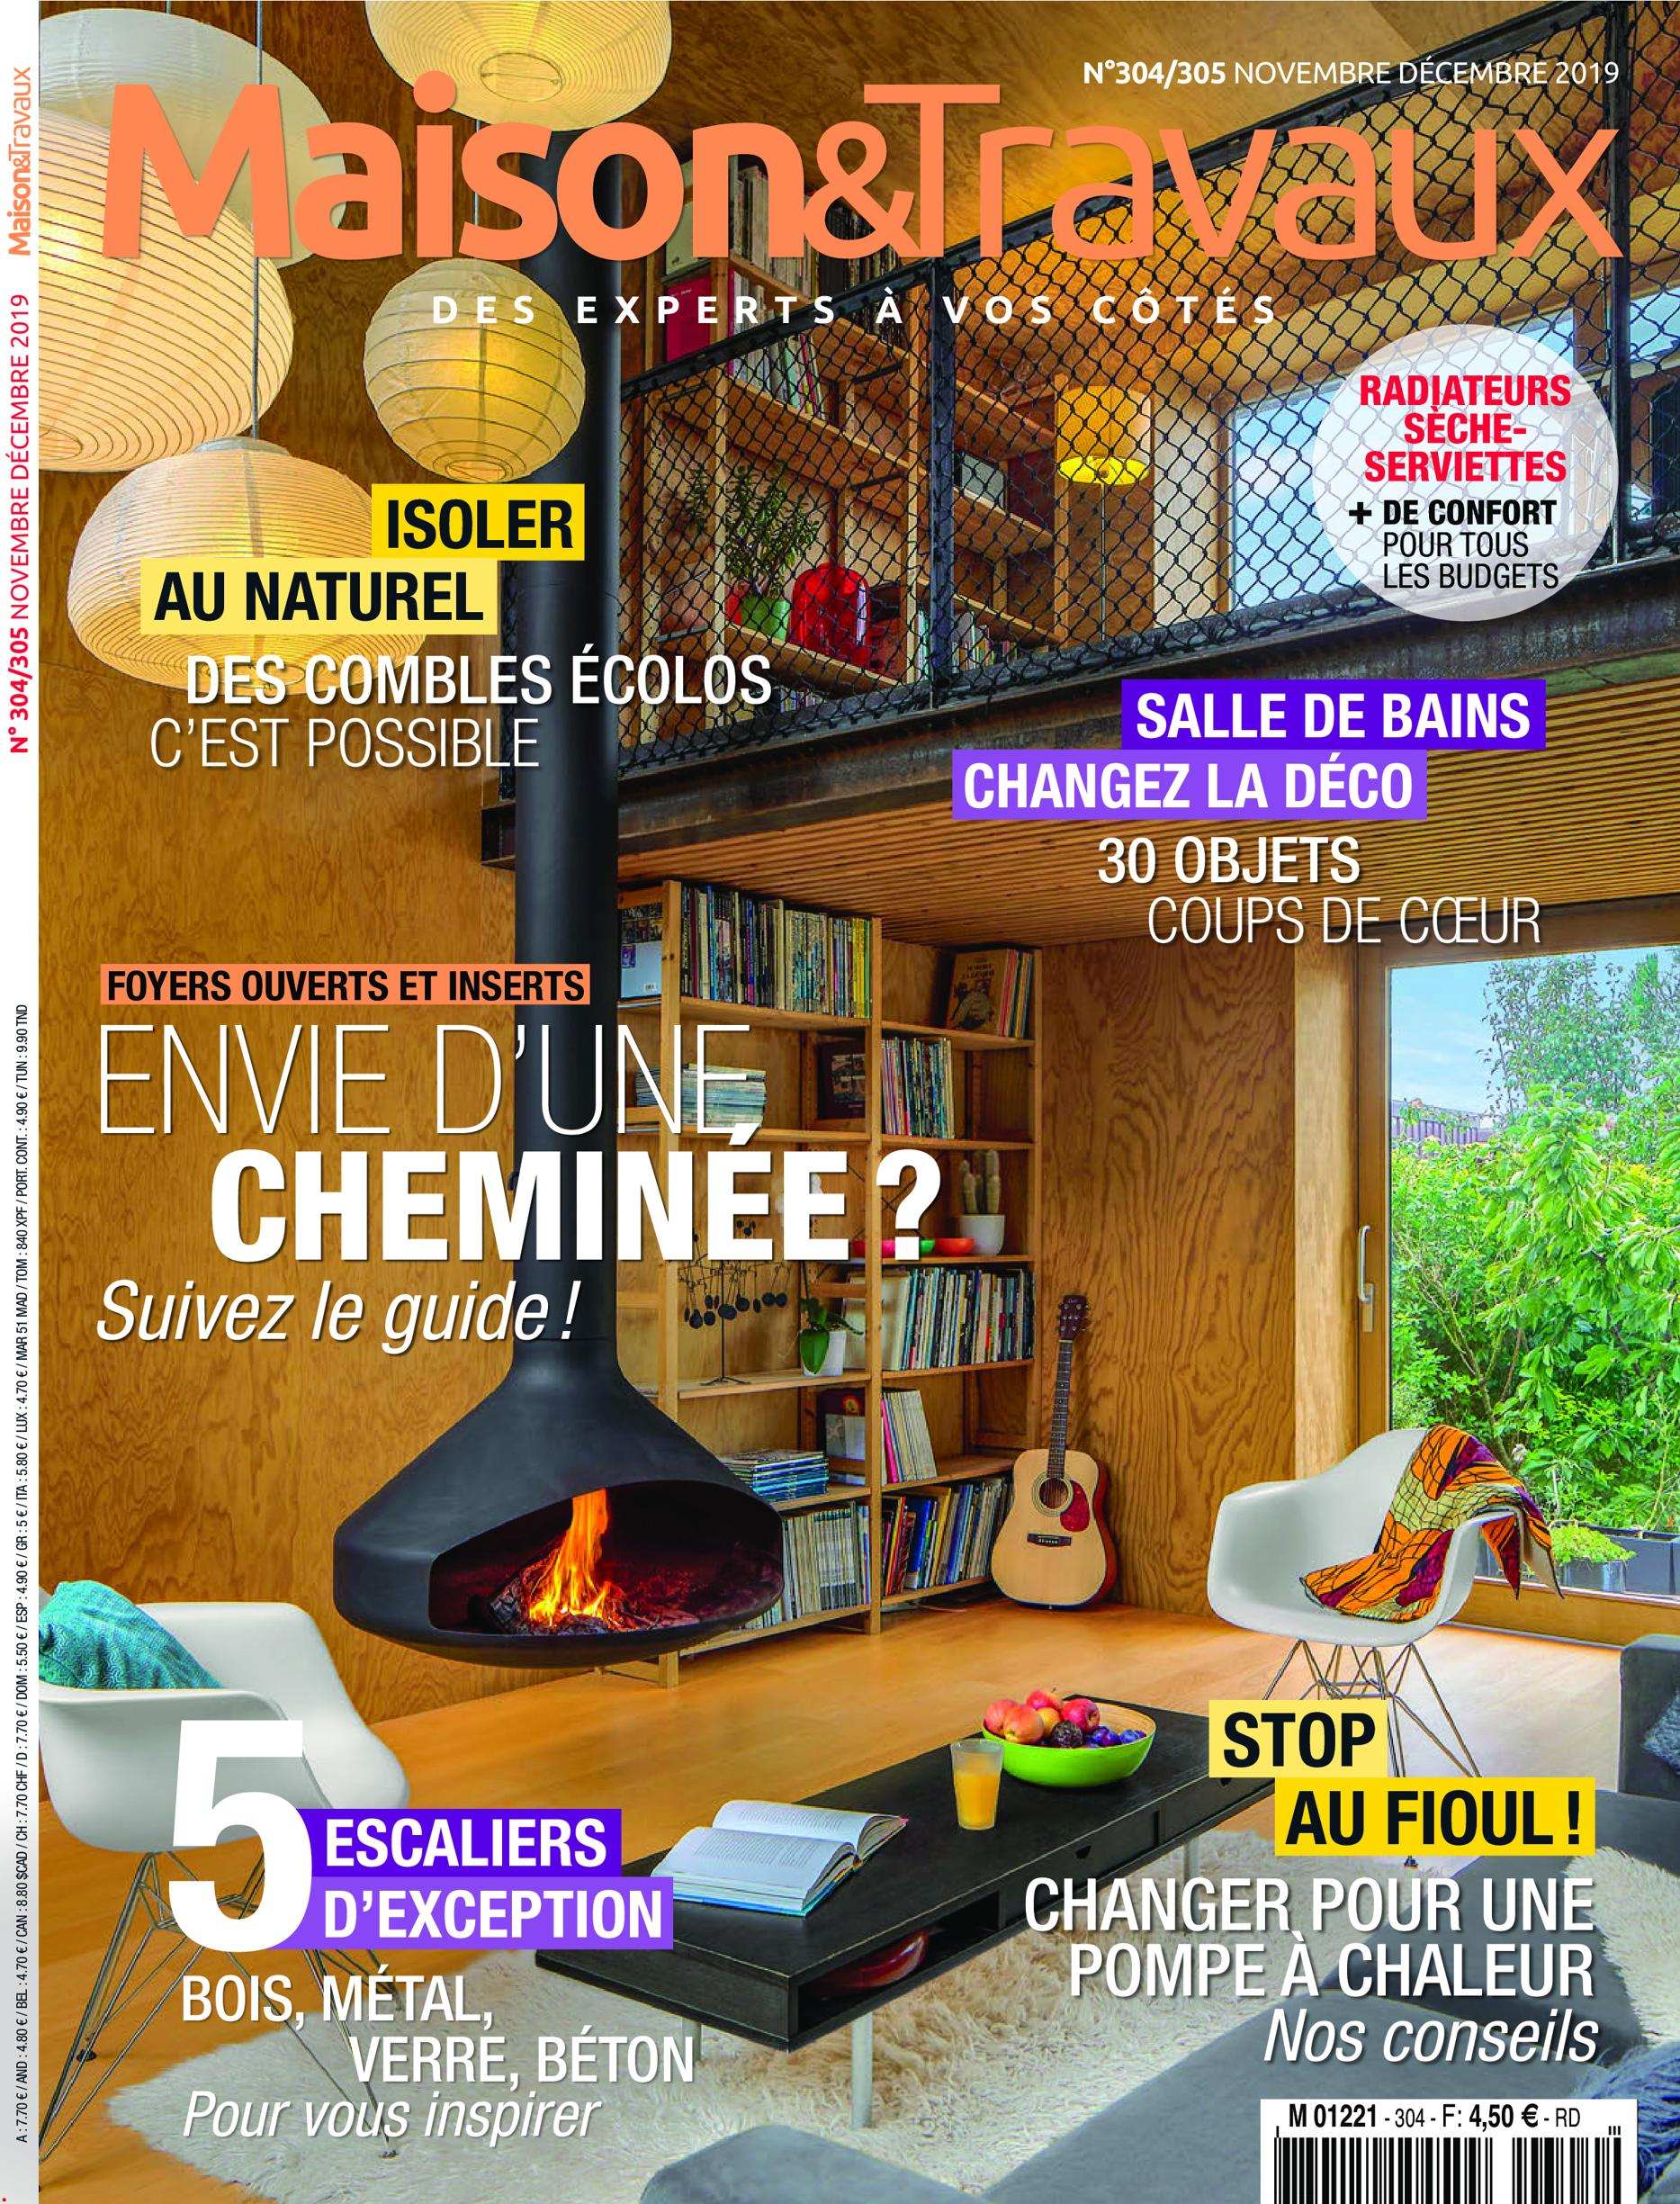 Maison & Travaux Magazine download maison & travaux - novembre/decembre 2019 - softarchive